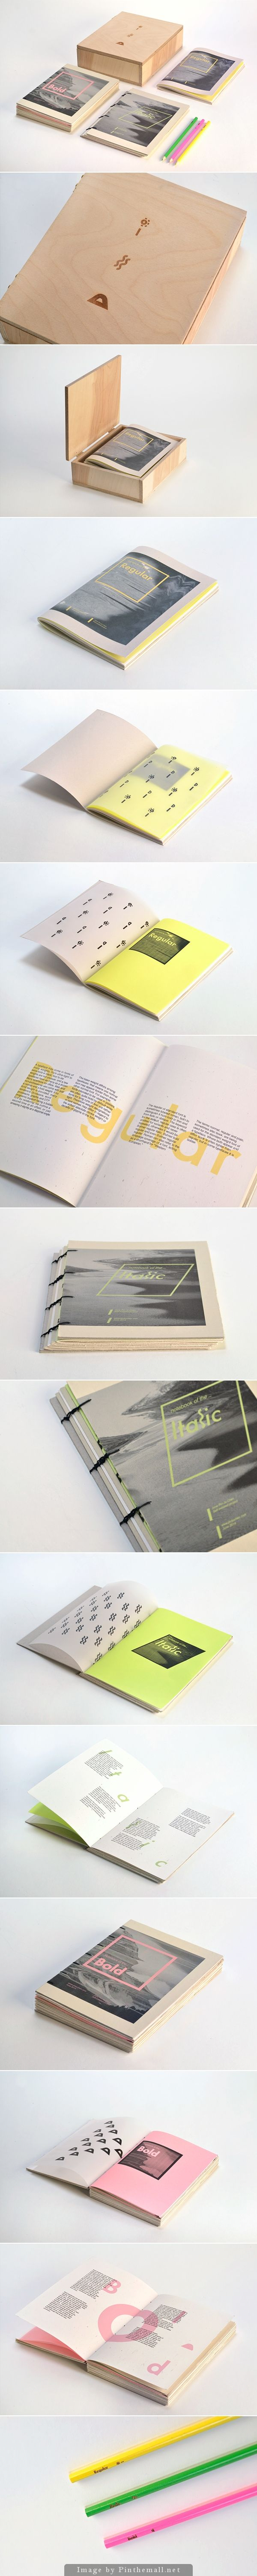 Font Book by Pin-Ju Chen (Portfolio Inspiration) Good: box, icons on front, book placement  To Be Better: logo instead of icons, 1 book = smaller depth, make leather pouch on inside for postcard, BCs, or take away?